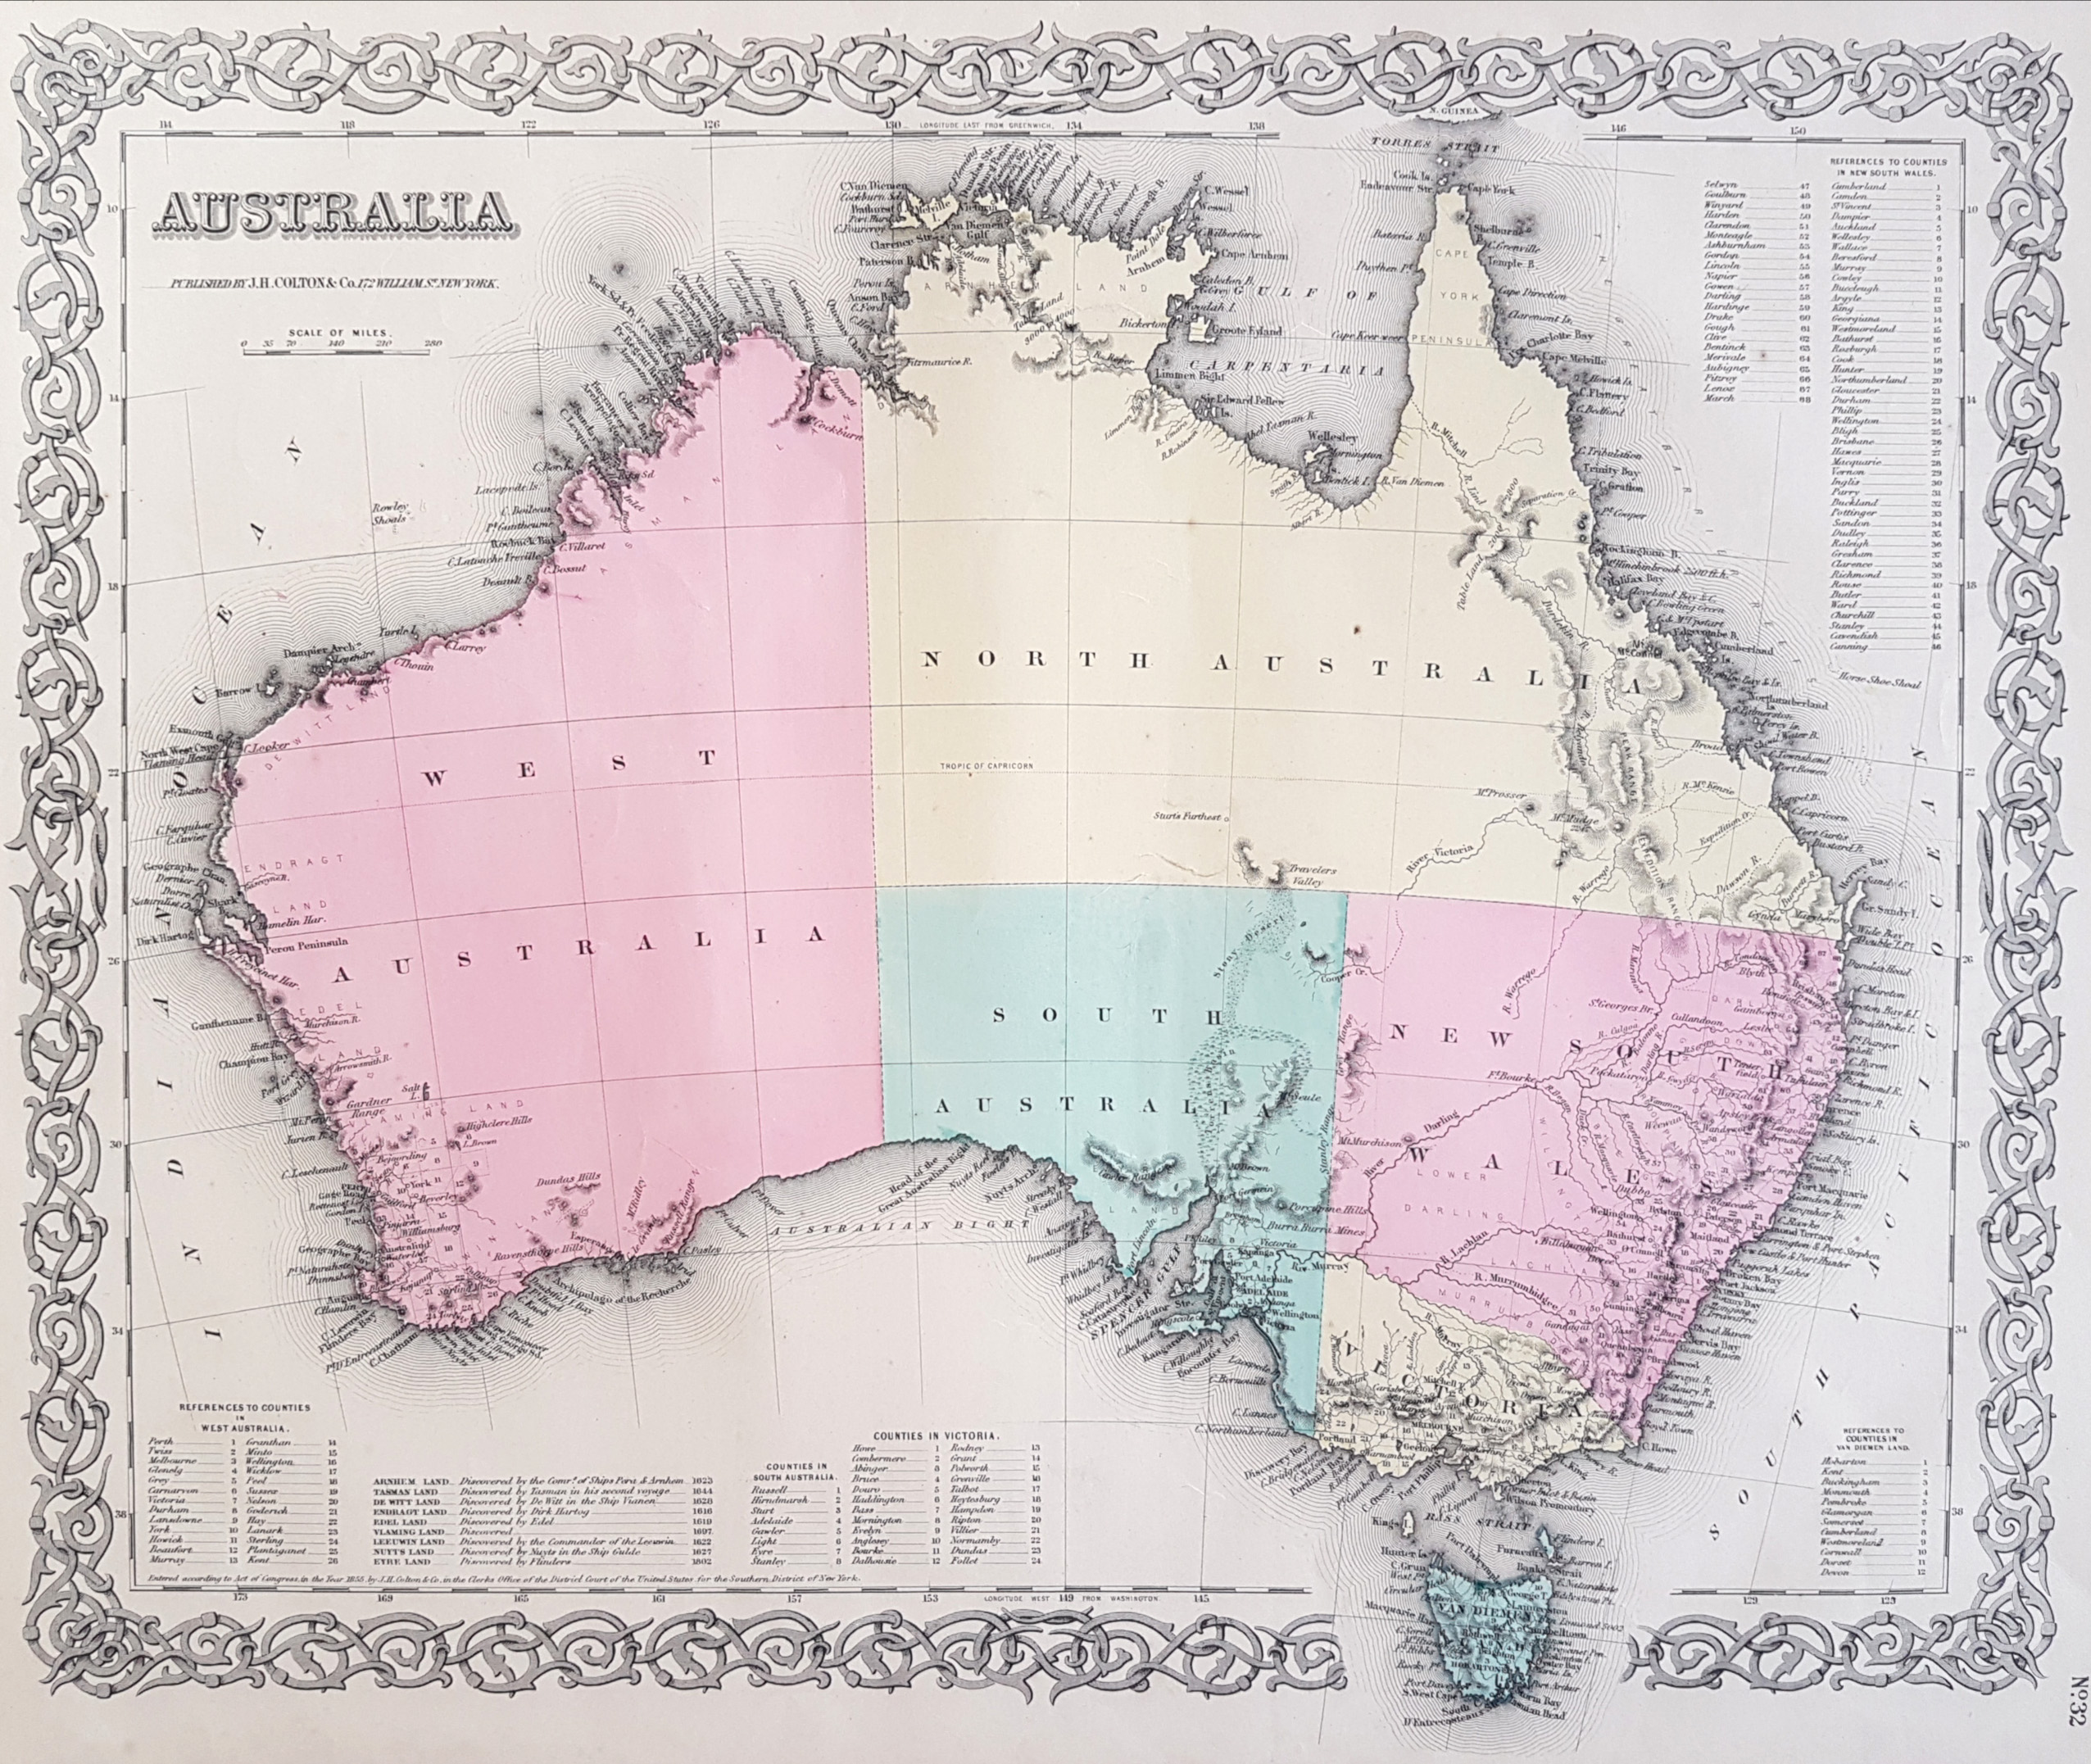 First Edition Colton's Australia antique map c1855.